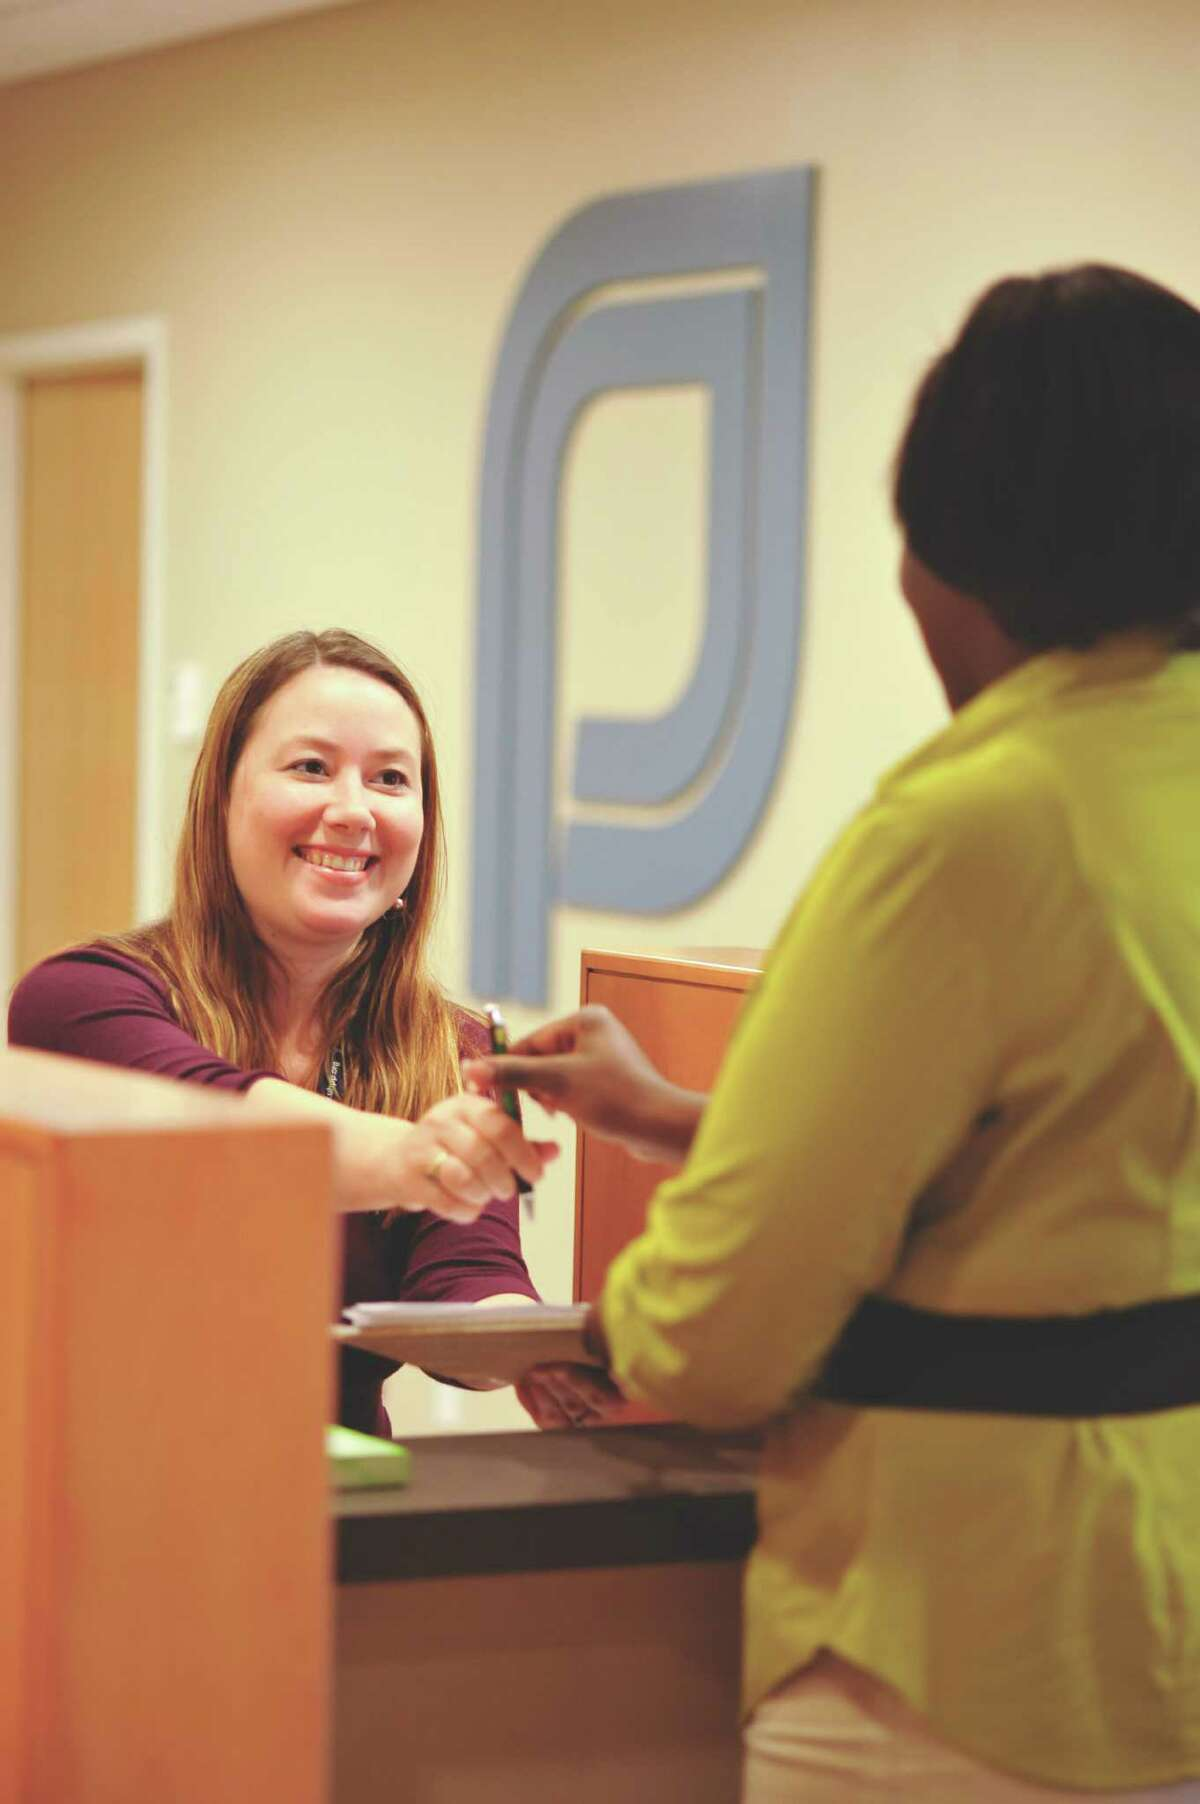 Some of the services that UHPP provides include counseling, health screenings and, of course,contraception.